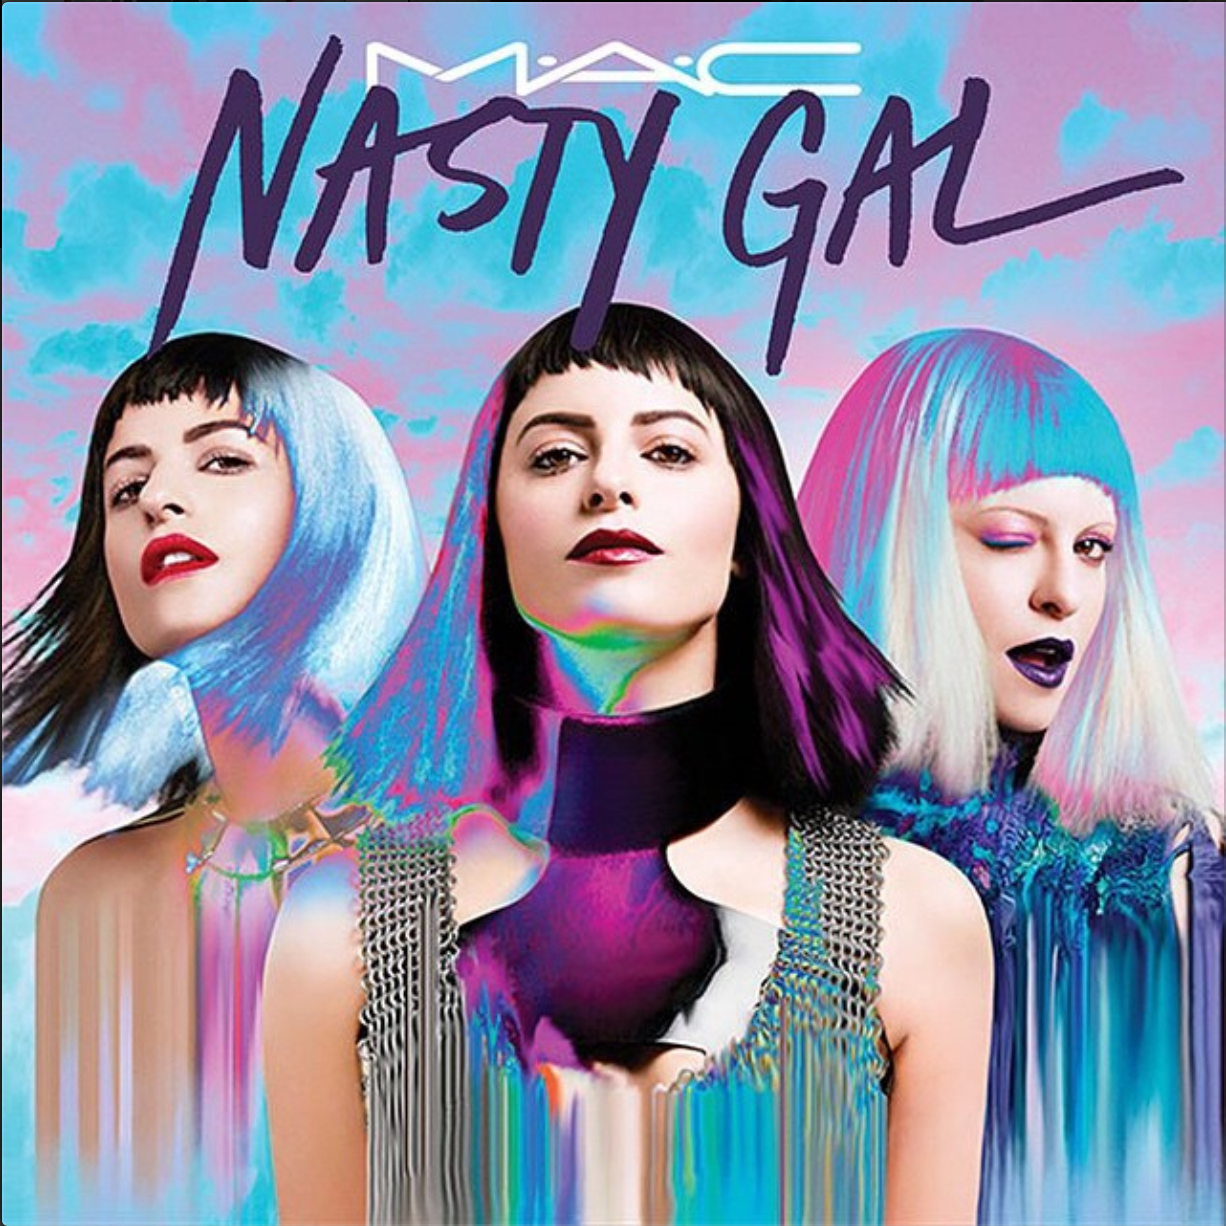 <b>NASTY GAL TO TEAM UP...</b>